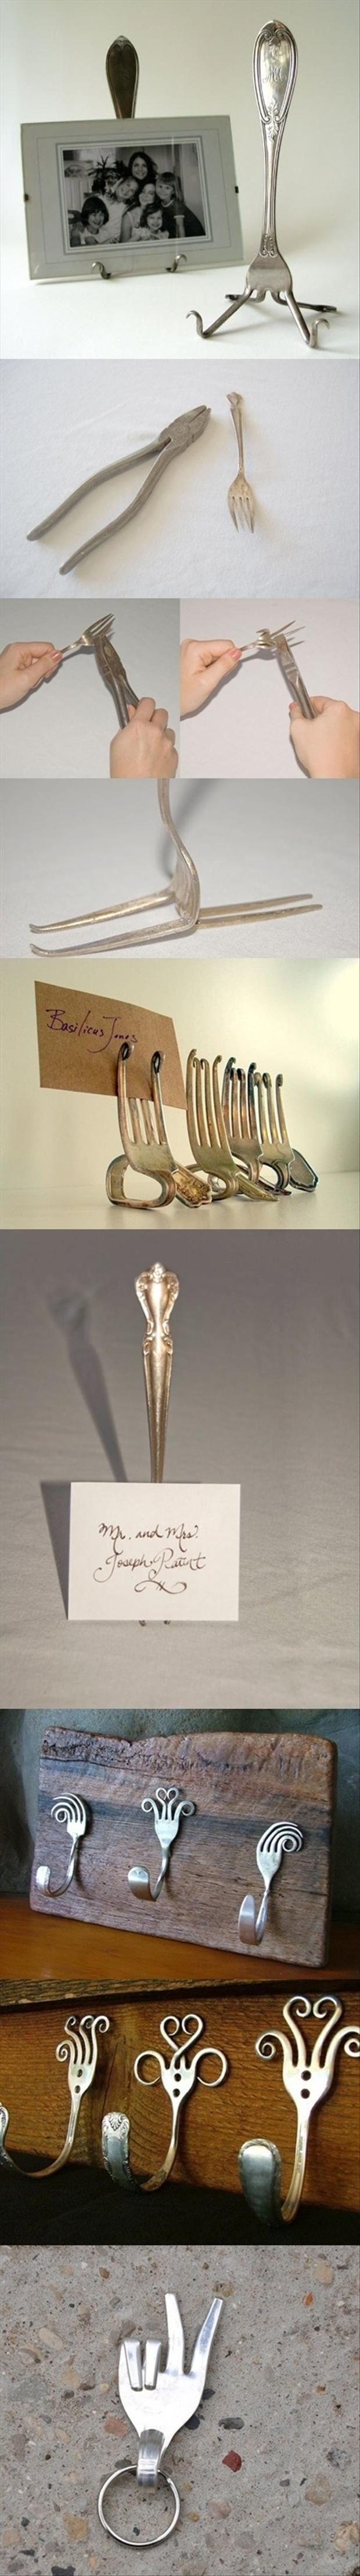 Fun Do It Yourself Craft Ideas. Reusing Old Forks. esp the sign-holders